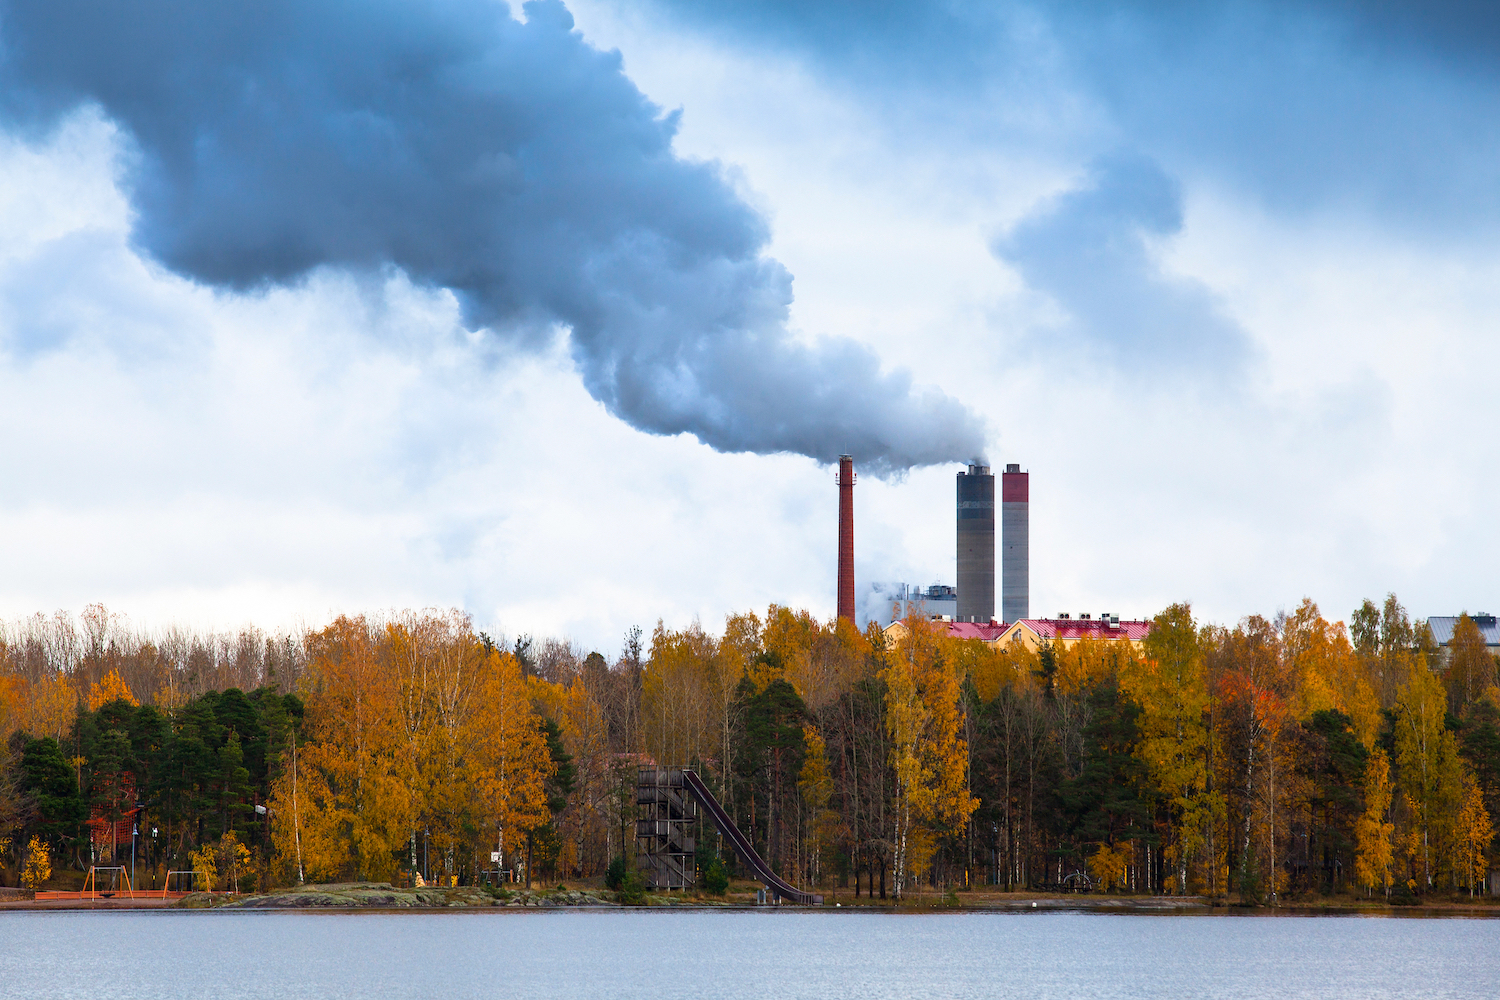 An exciting new study marks a big step in finding alternate fuel sources that don't add harmful byproducts to our atmosphere.